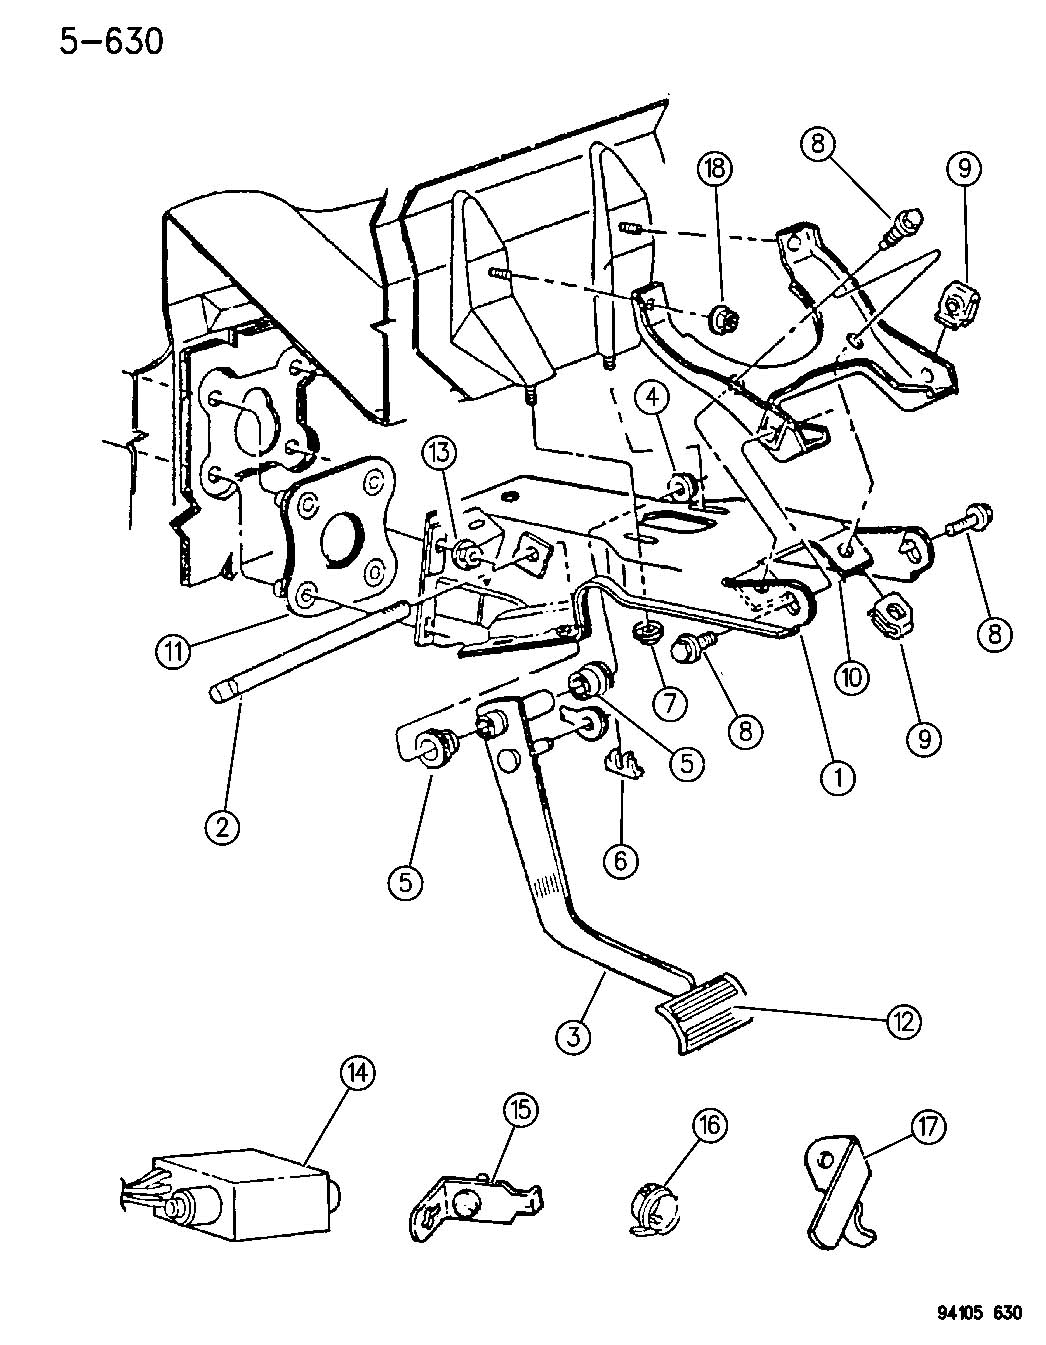 Buick Rainier Parts Diagram Seat. Buick. Auto Wiring Diagram